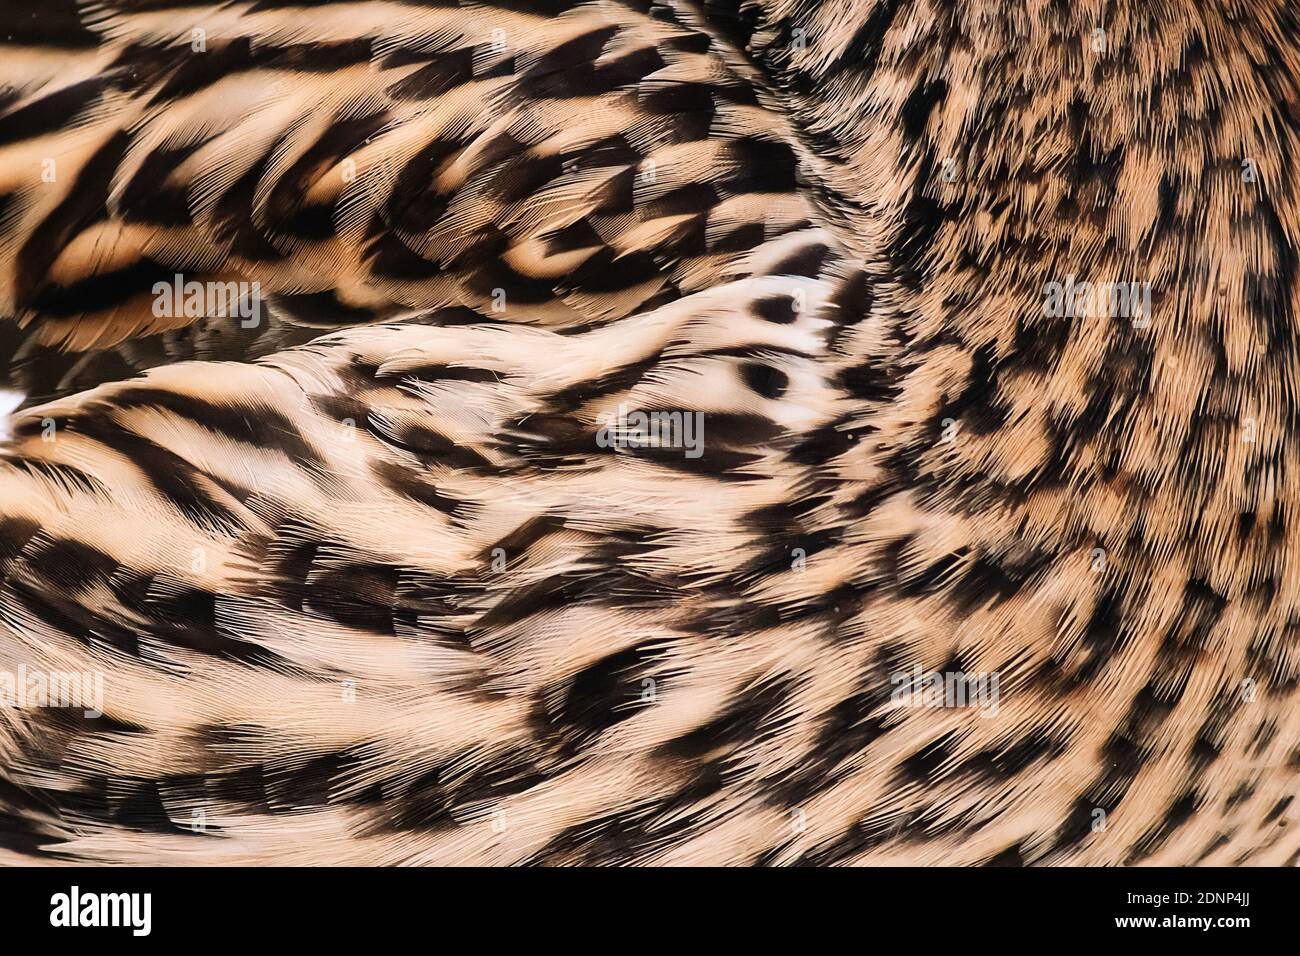 Bird feathers close up. Wild duck wing. Texture for design. Stock Photo